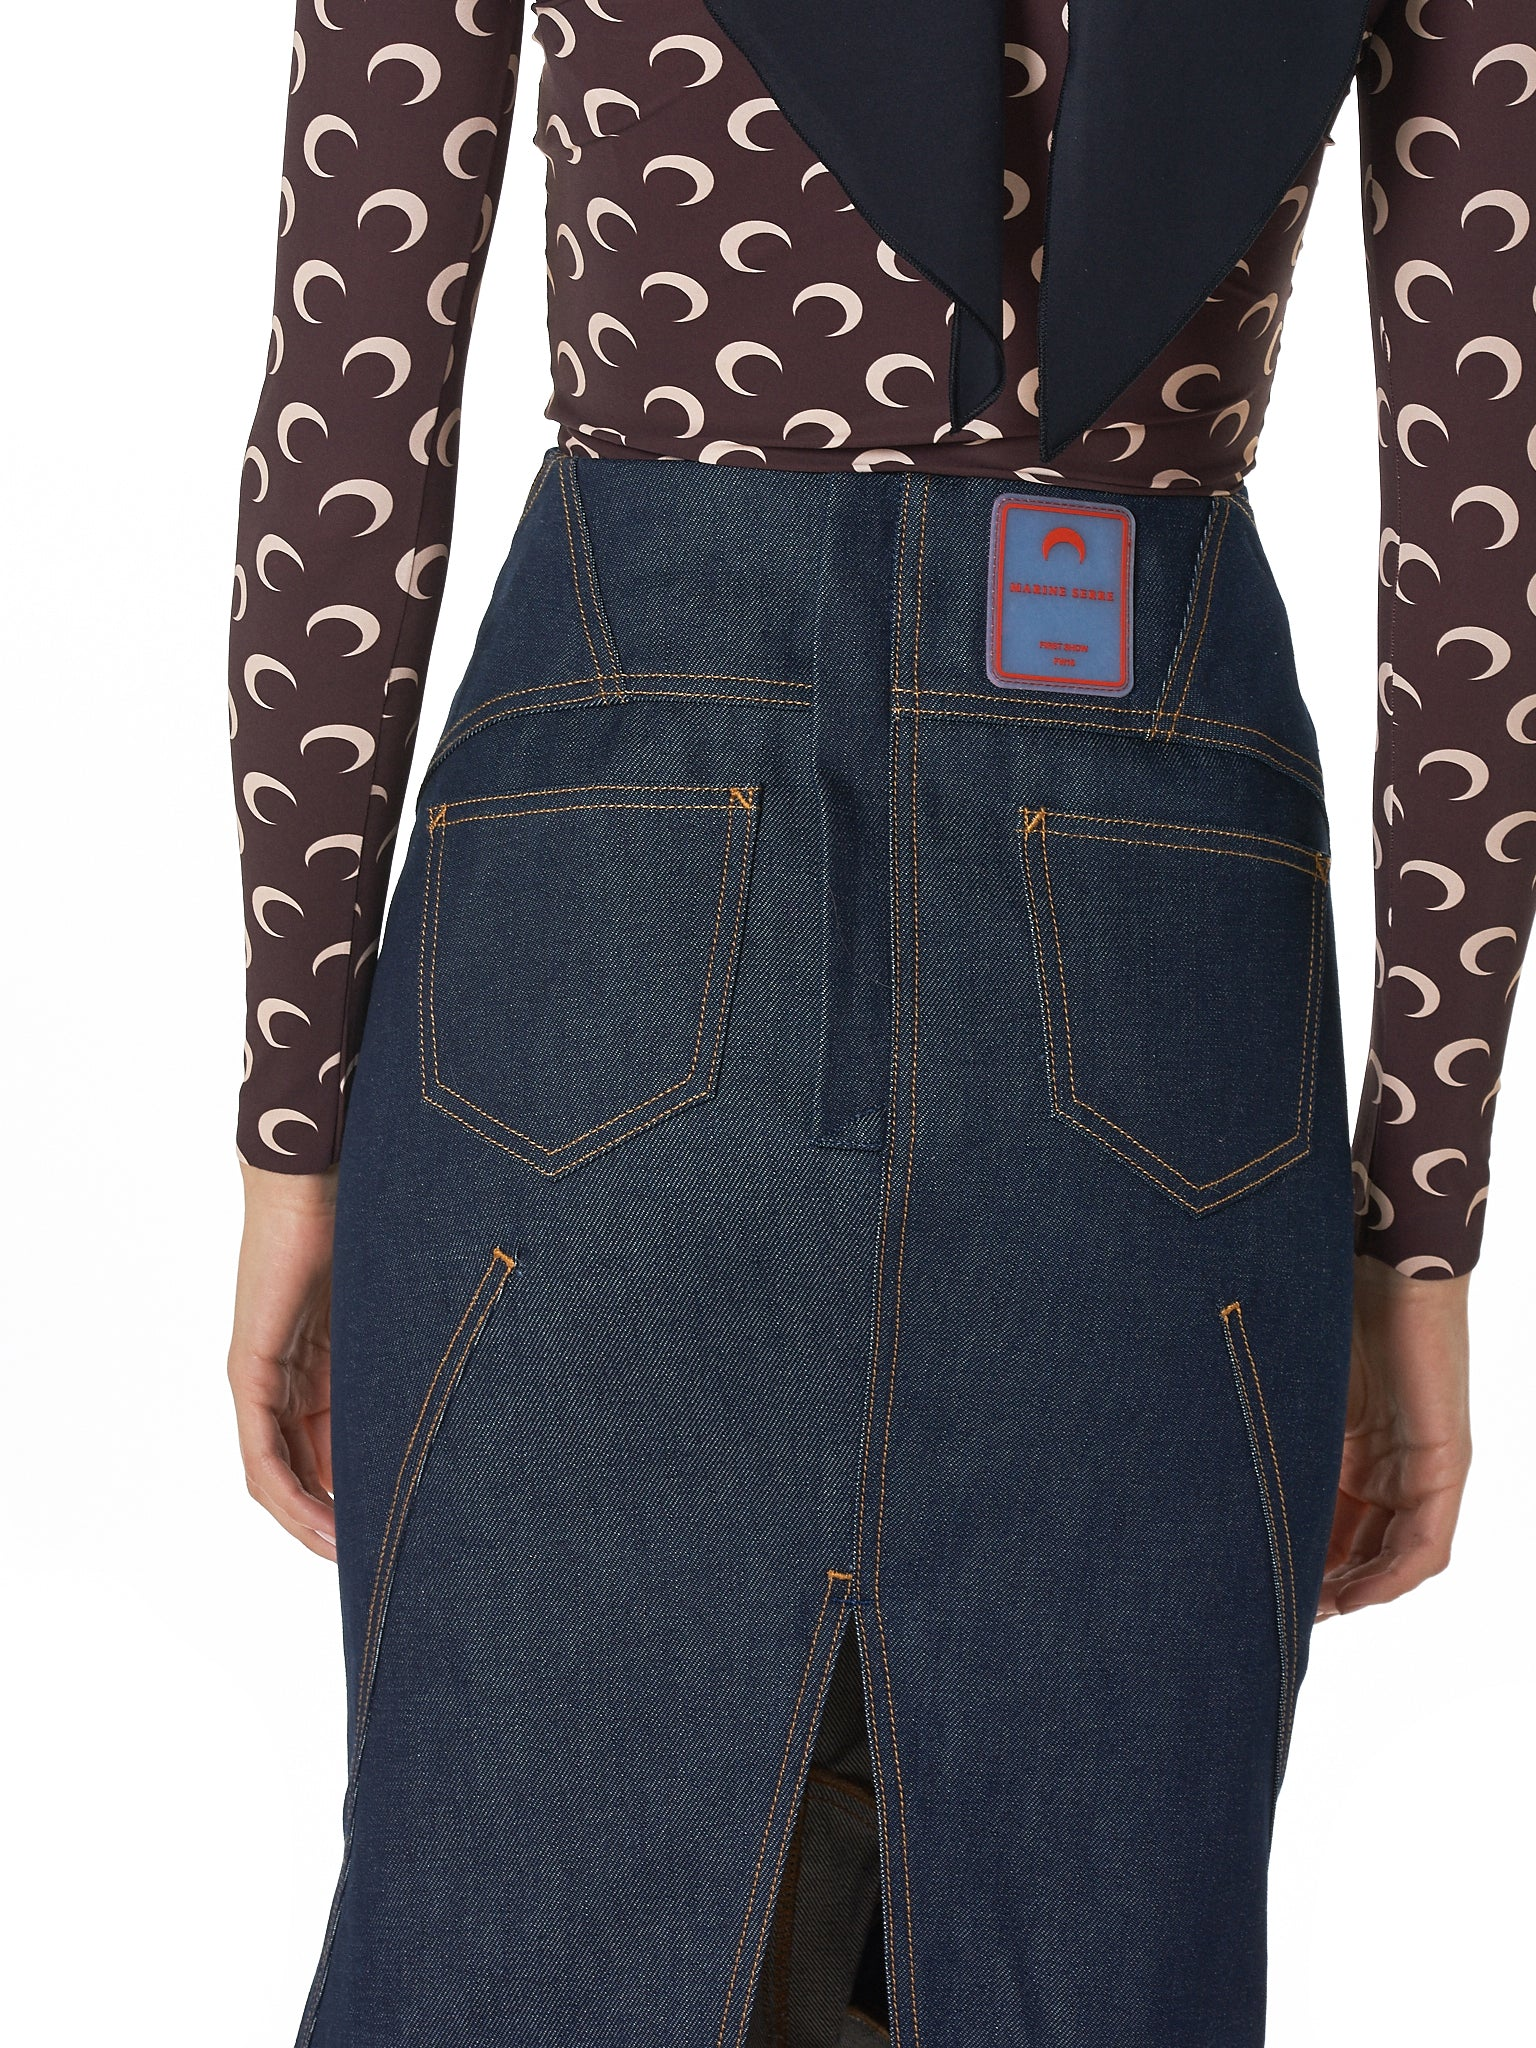 Marine Serre Denim Skirt - Hlorenzo Detail 1